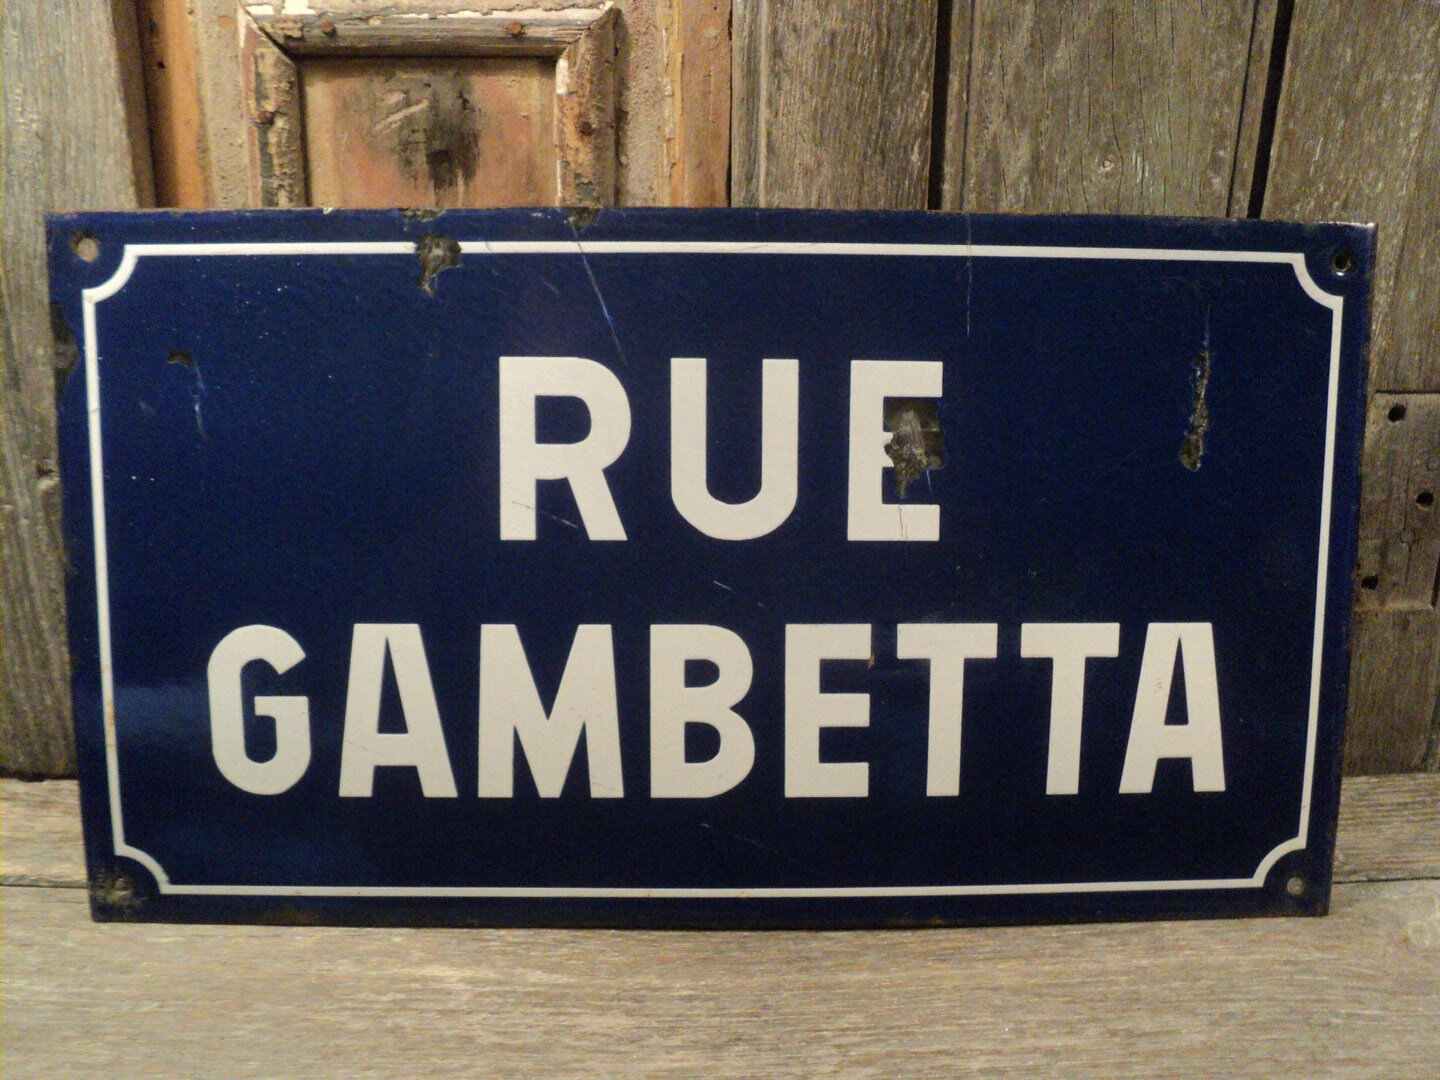 ancienne plaque de rue maill e rue gambetta enameled street sign virtual broc. Black Bedroom Furniture Sets. Home Design Ideas